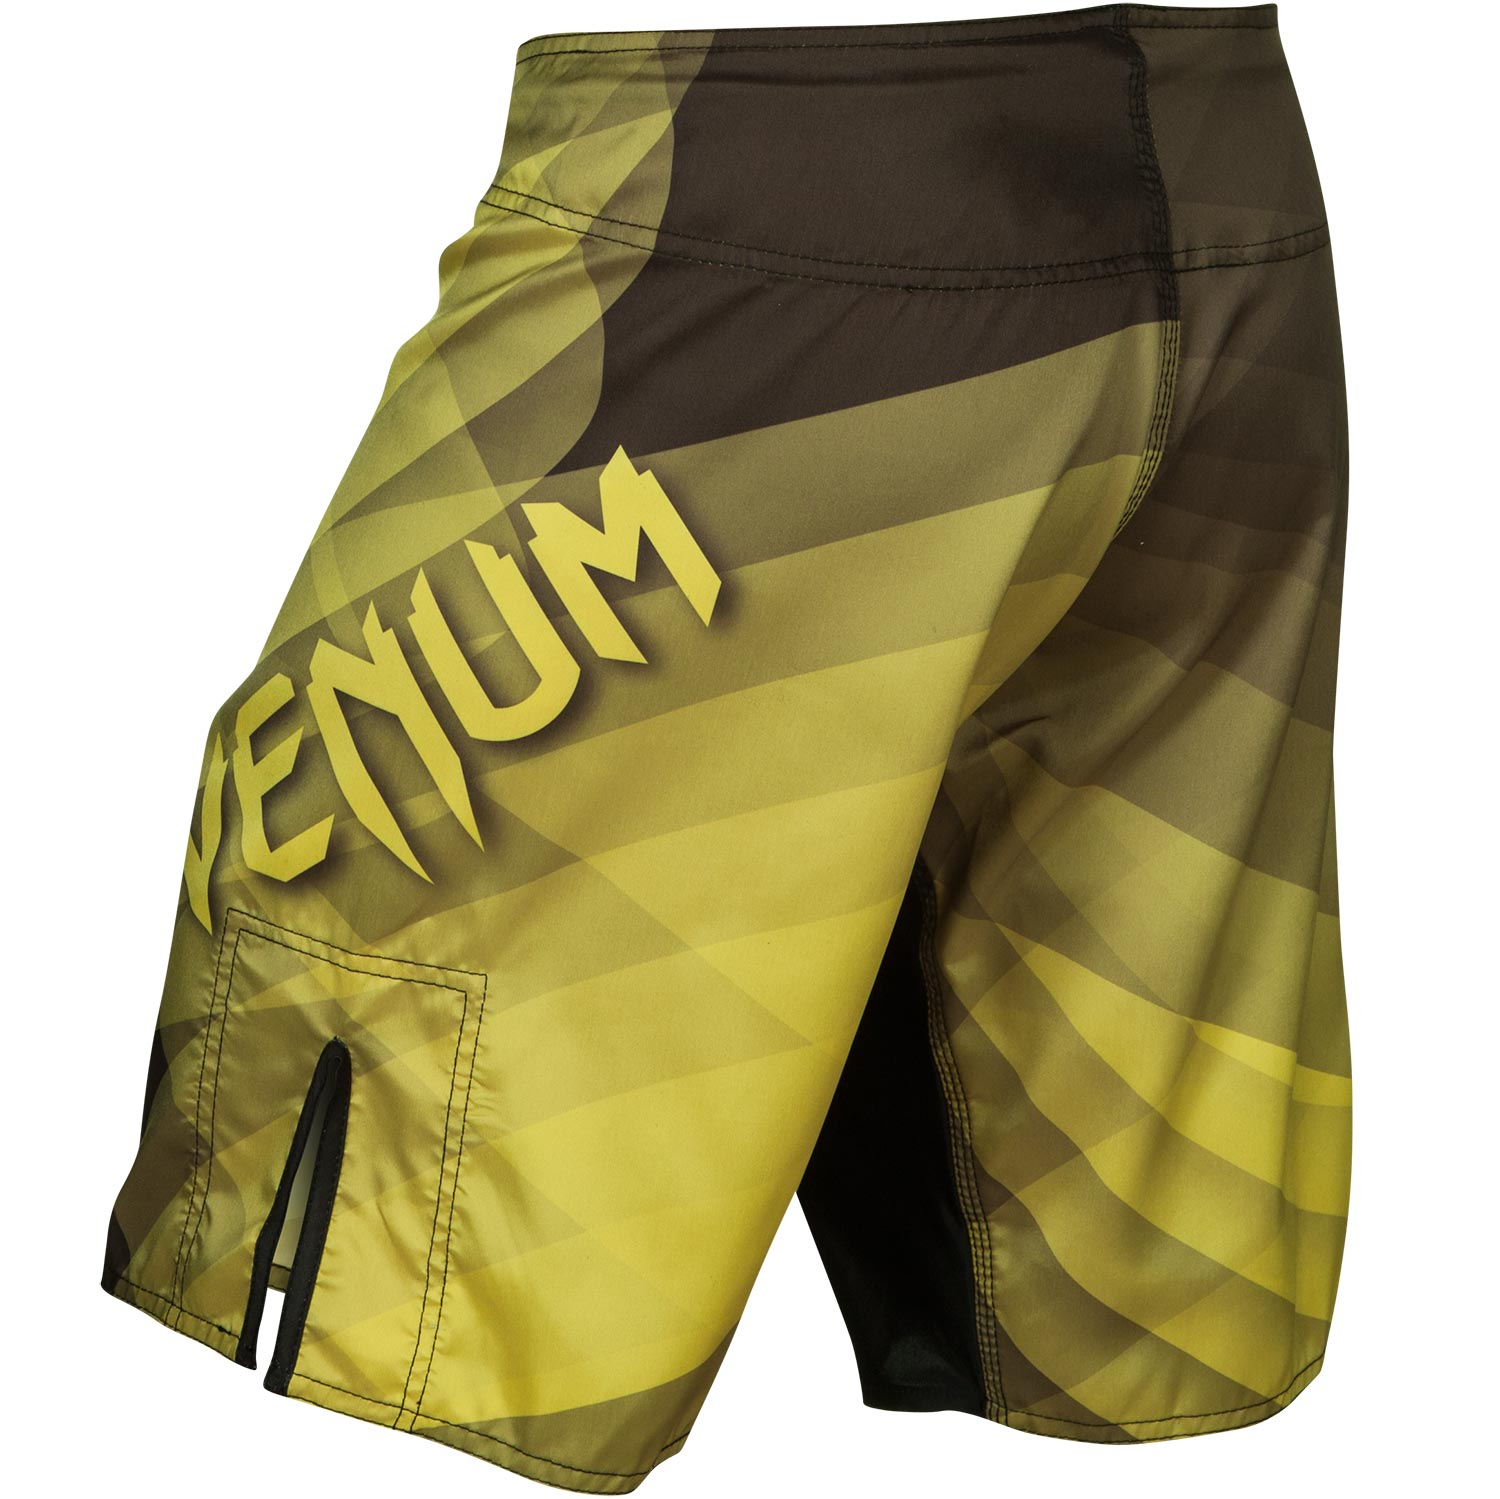 venum logo fight shorts in varying shades of yellow